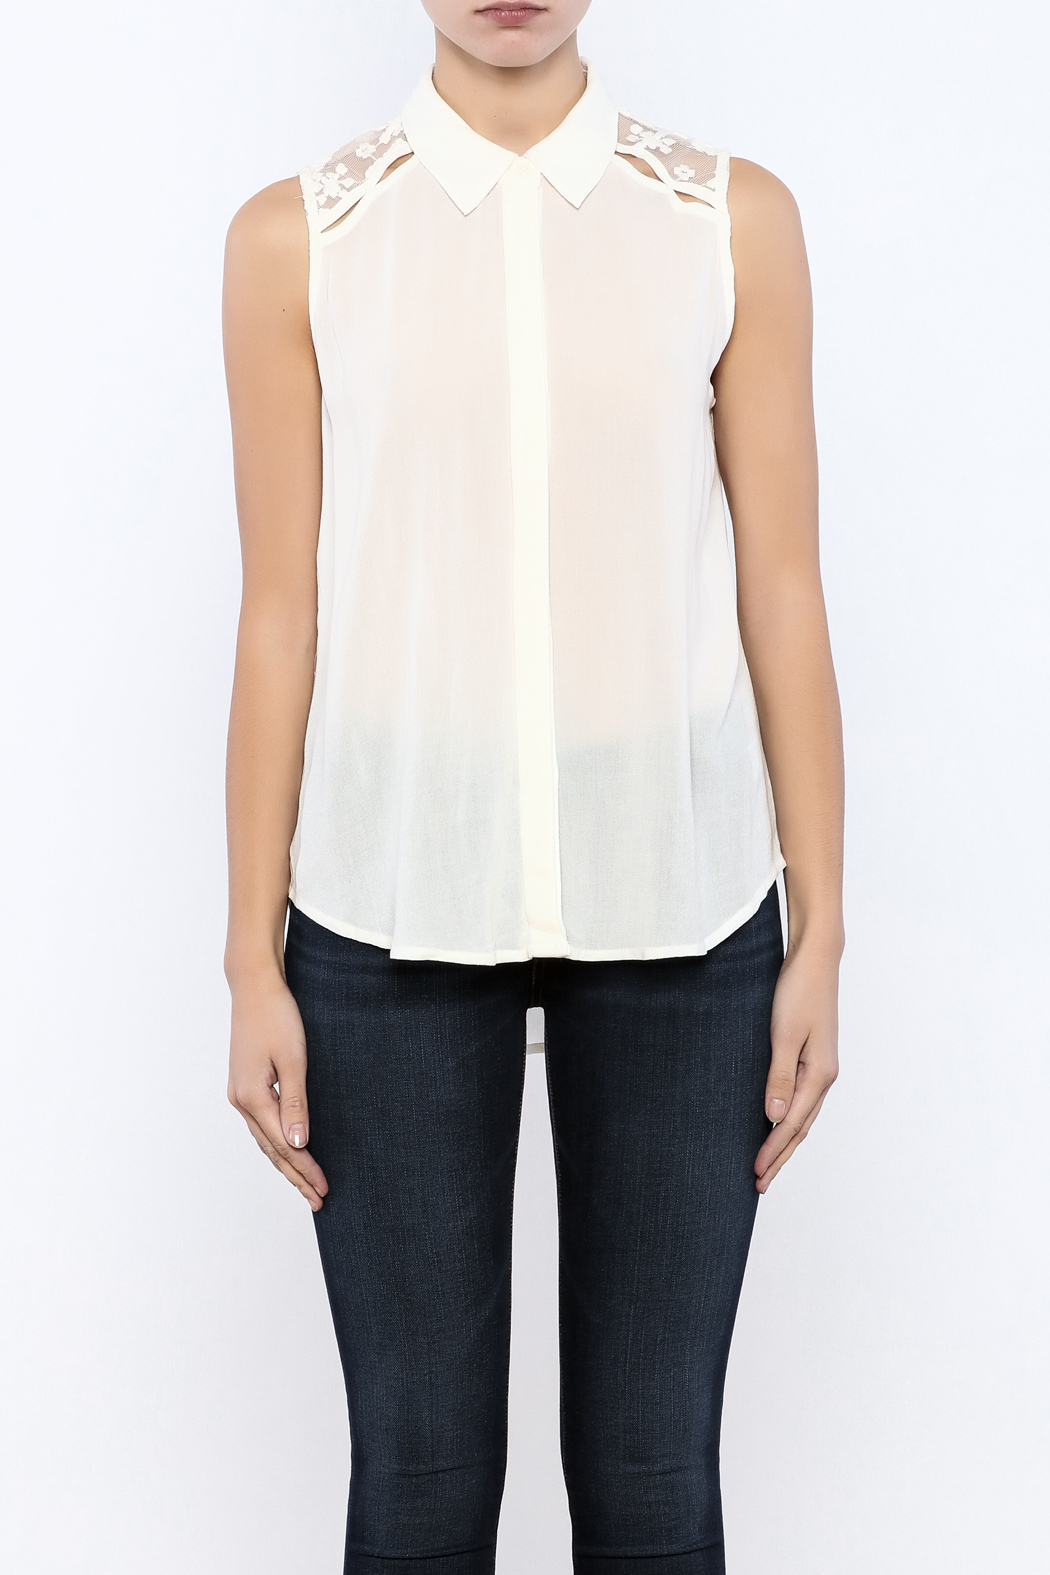 Bacio Lace Back Top - Side Cropped Image